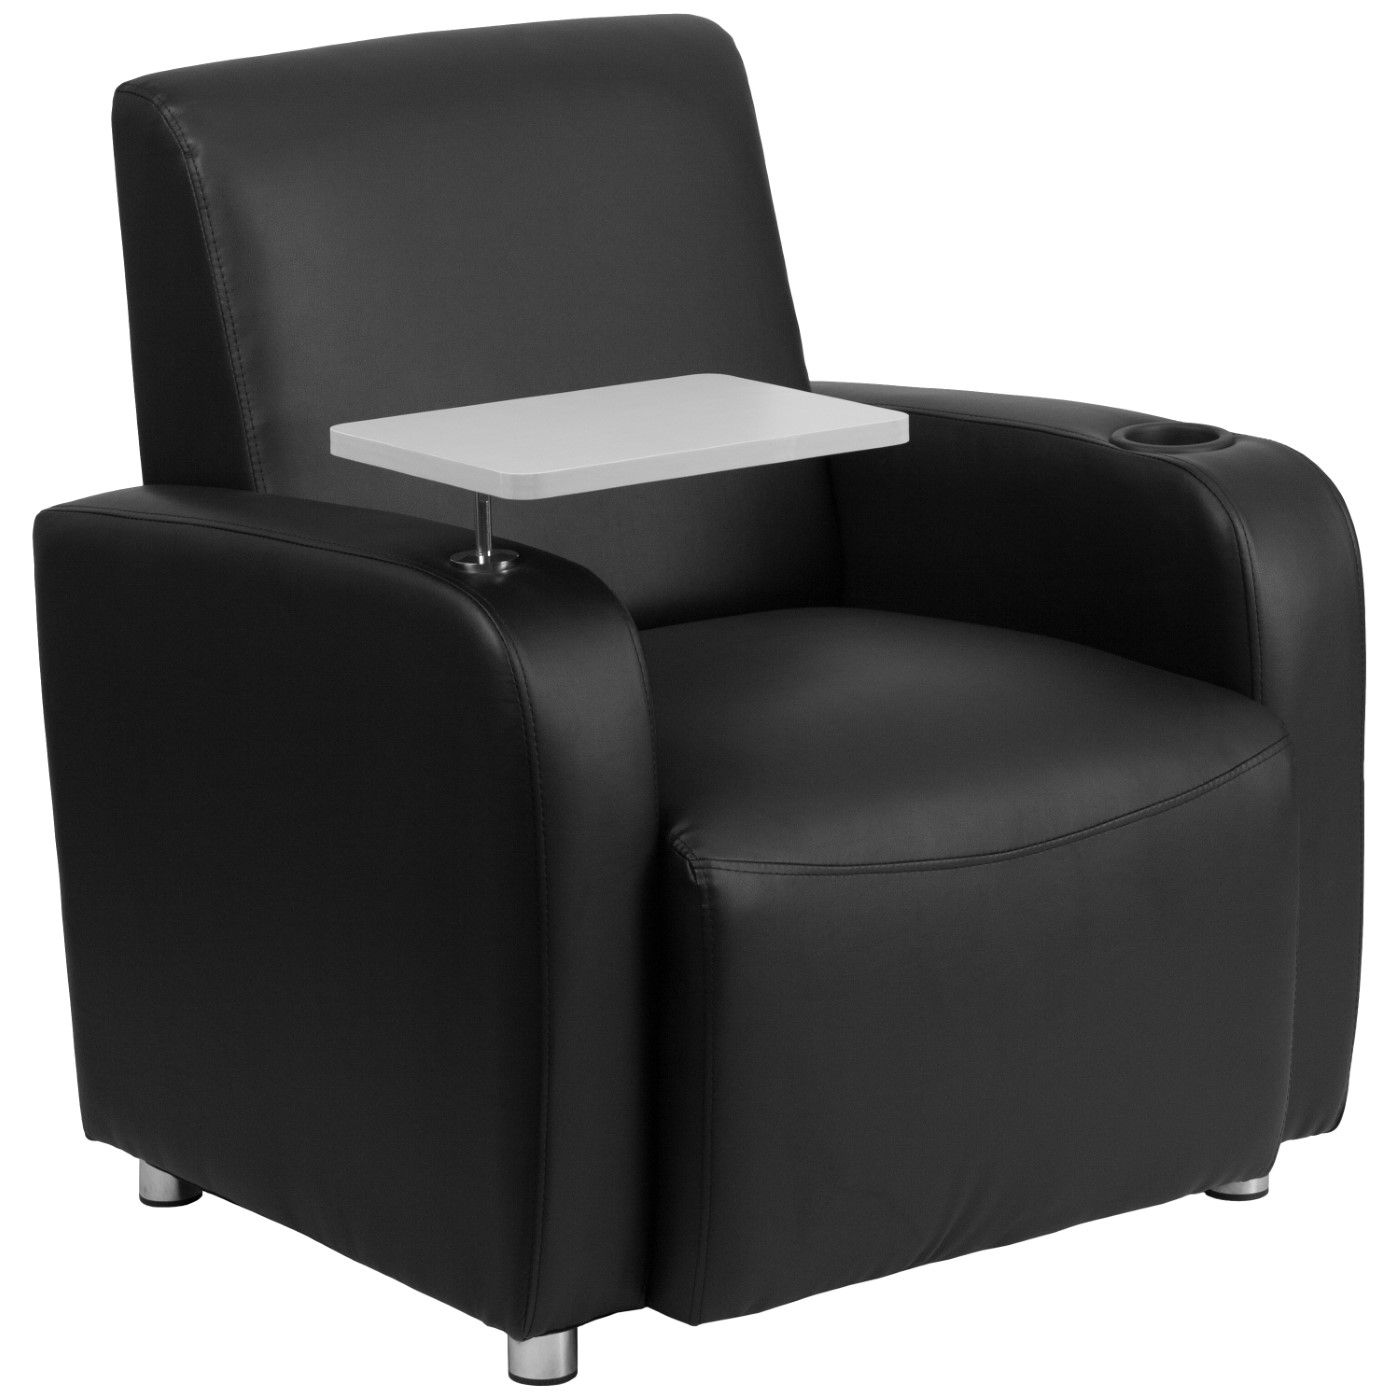 Black LeatherSoft Guest Chair with Tablet Arm, Chrome Legs and Cup Holder